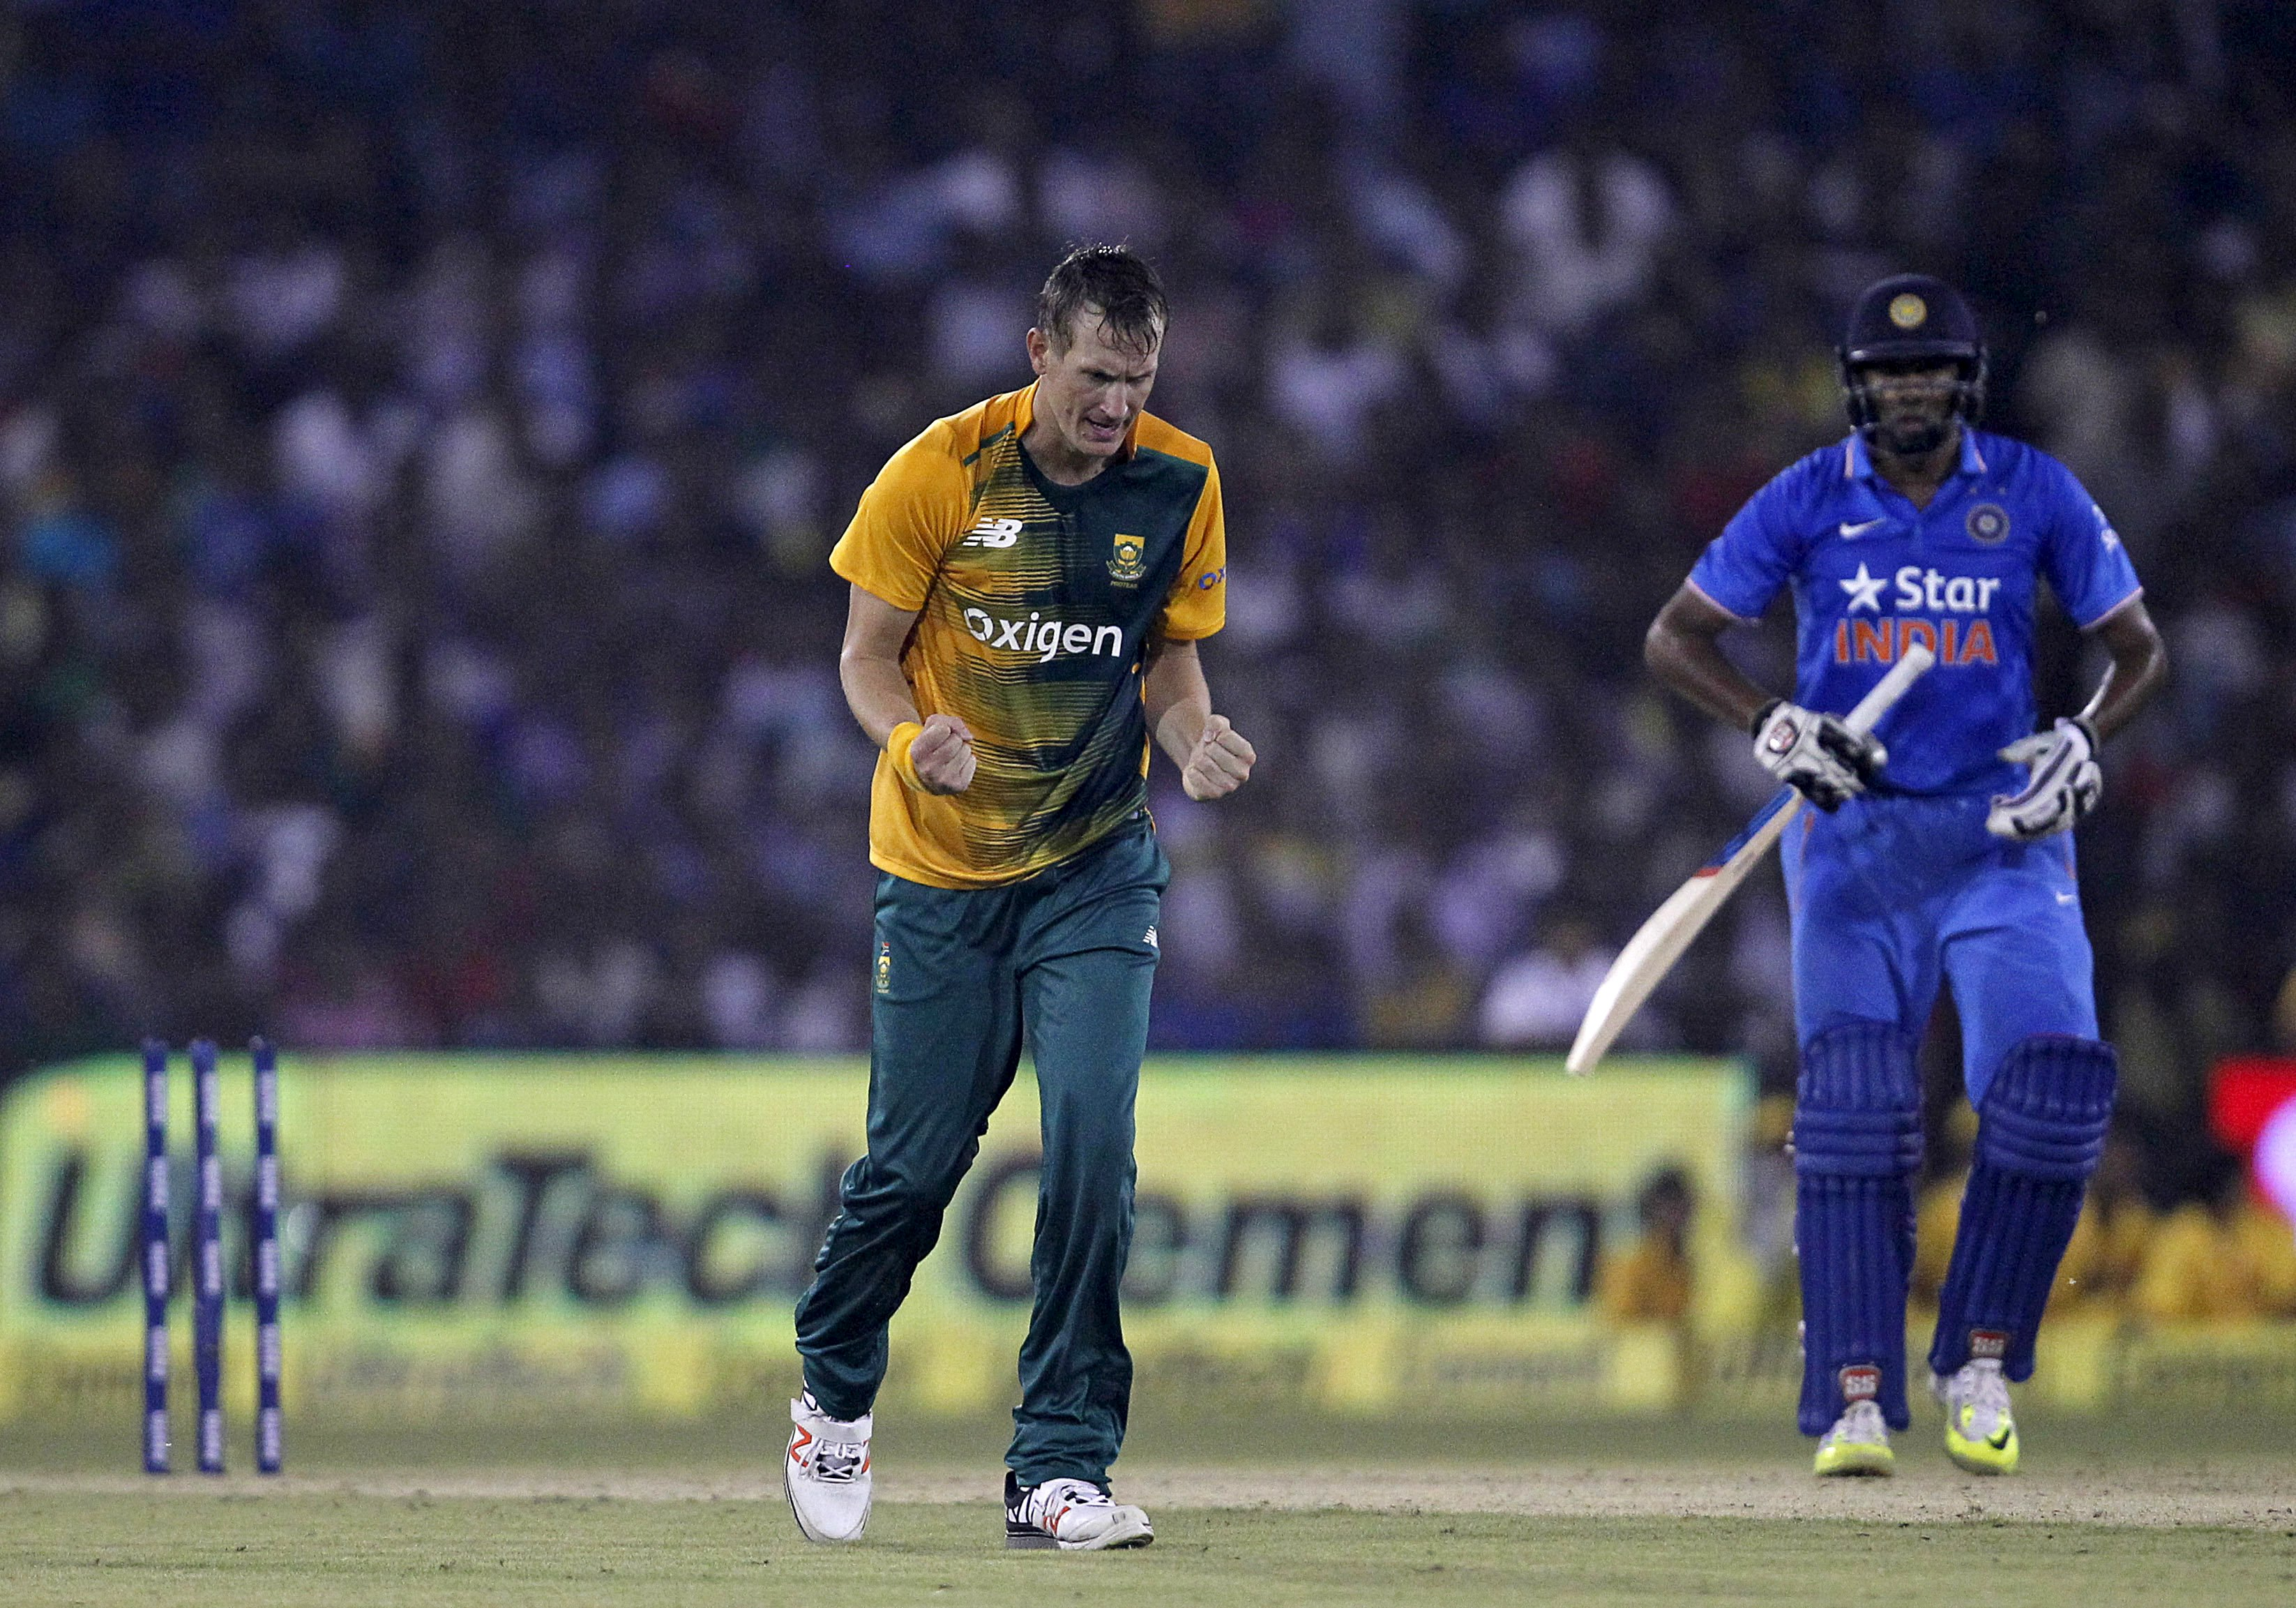 South African's Chris Morris celebrates after dismissing India's Ravichandran Ashwin during their second Twenty20 cricket match in Cuttack, India, October 5, 2015. Photo: Reuters